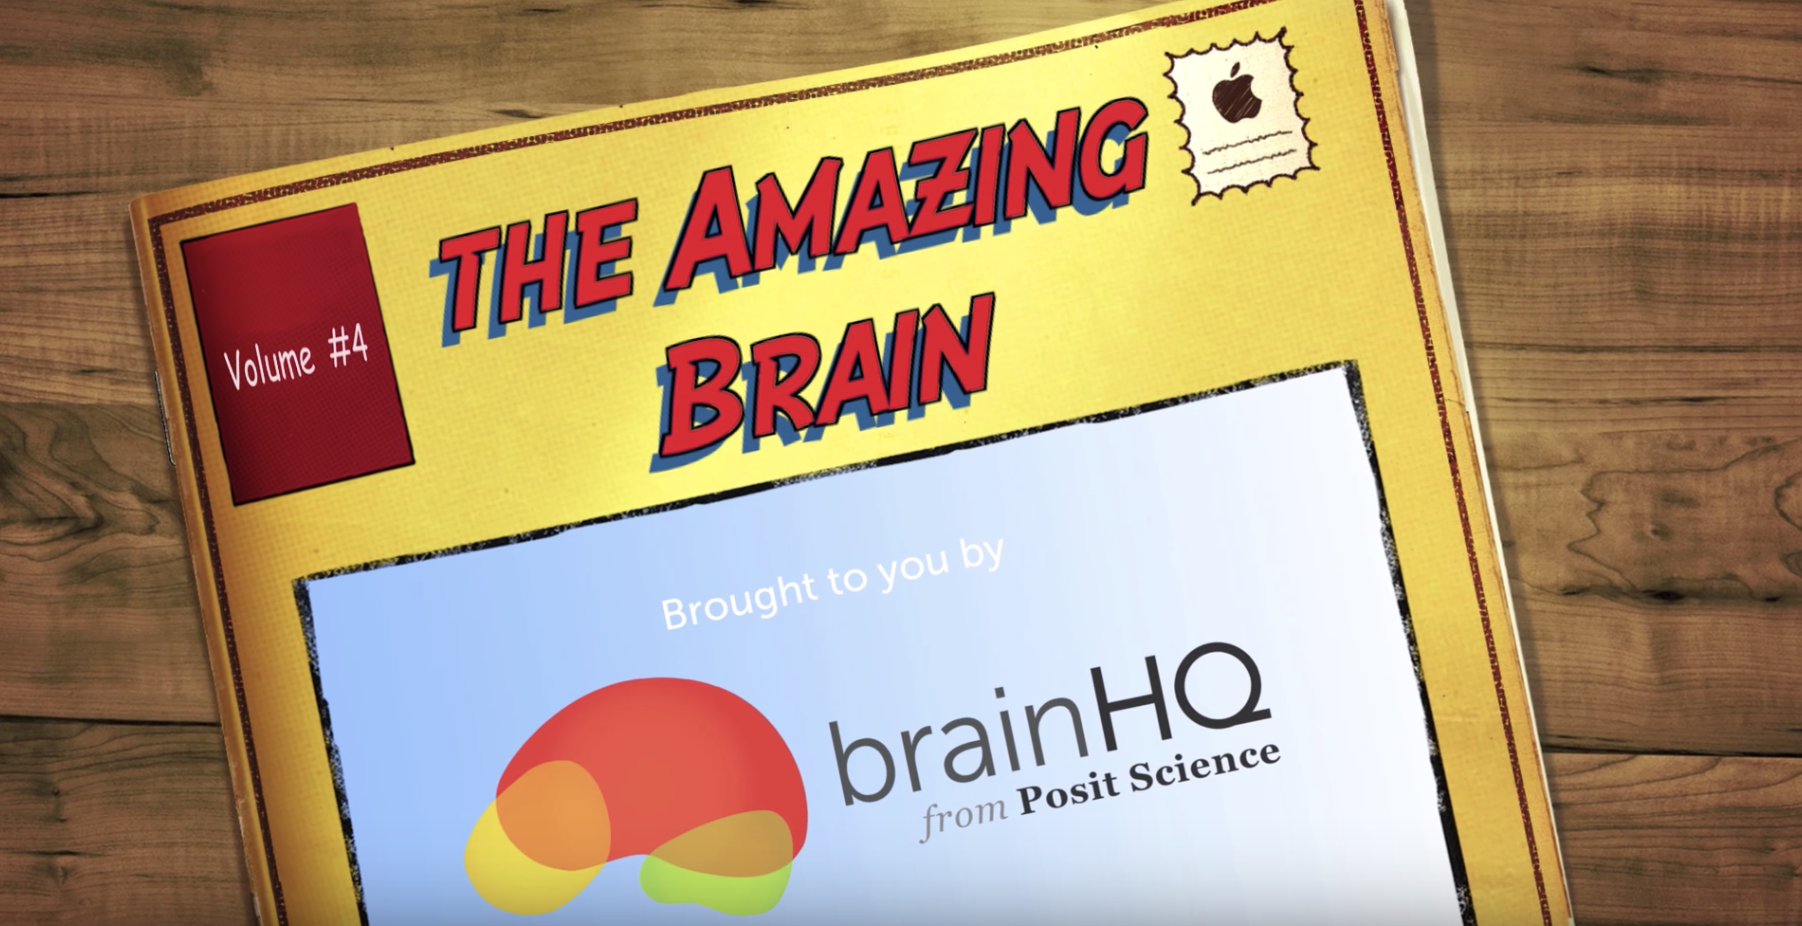 The Amazing Brain, Volume 4: To improve your hearing, turn the volume DOWN?